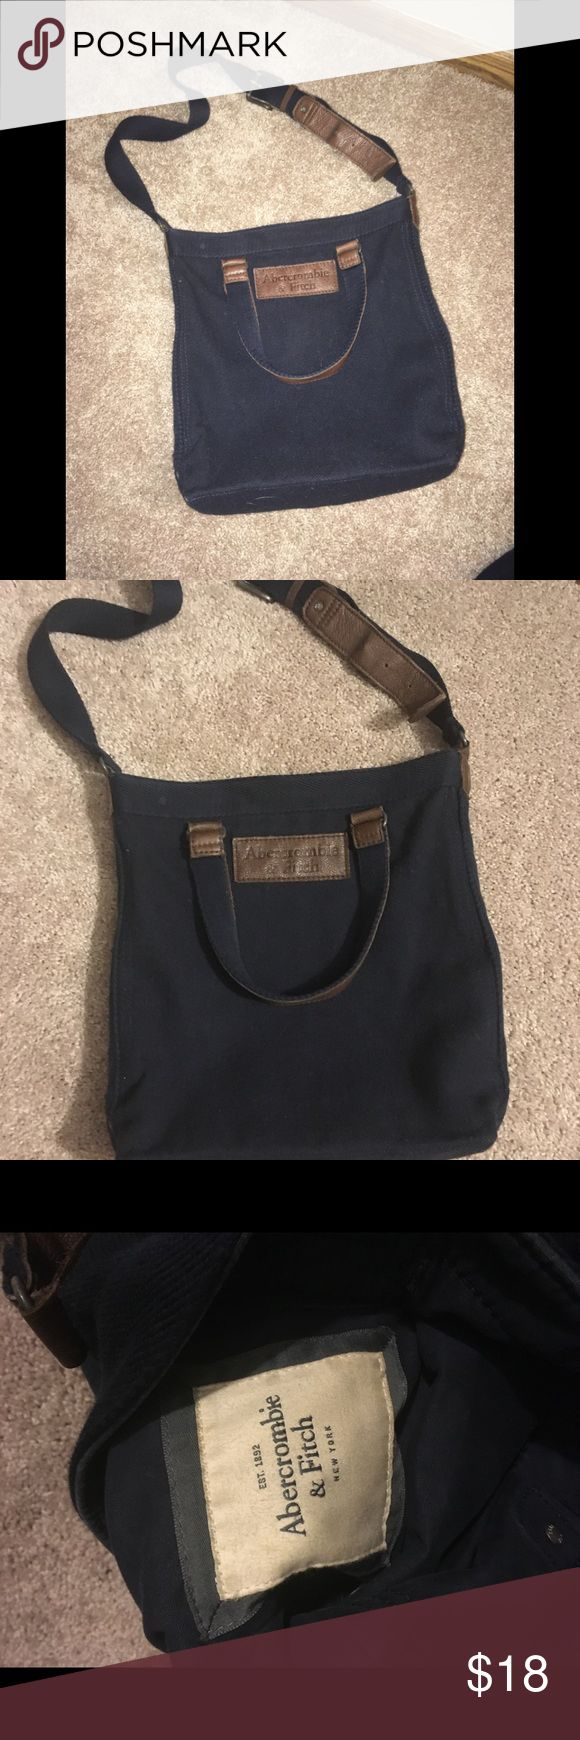 Navy blue Abercrombie and Fitch tote Navy blue Abercrombie and Fitch tote Abercrombie & Fitch Bags Crossbody Bags